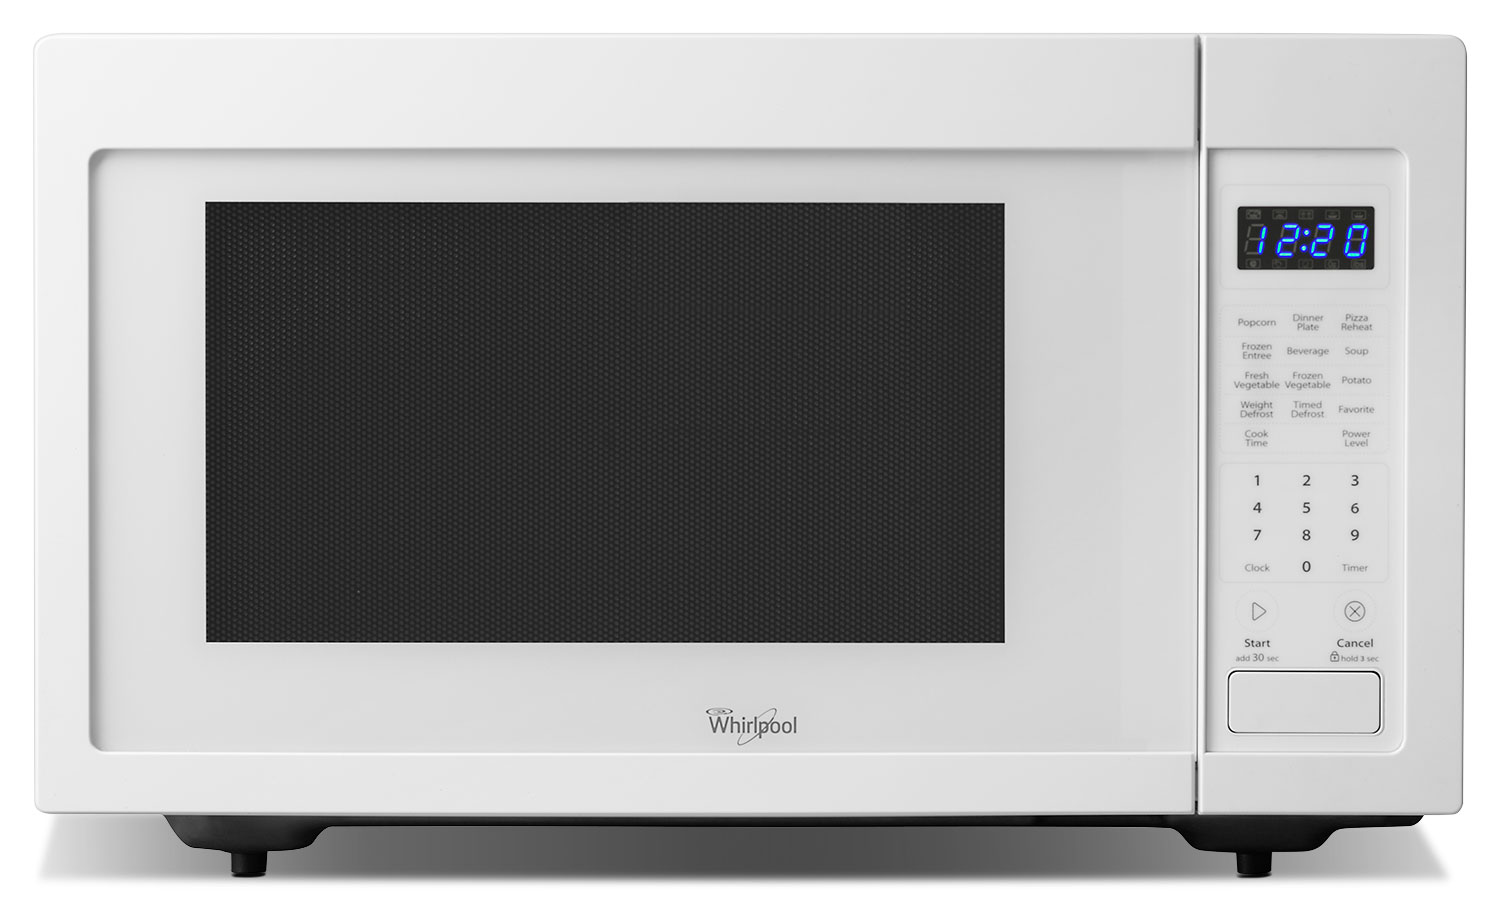 Whirlpool White Countertop Microwave (1.6 Cu. Ft.) - YWMC30516DW